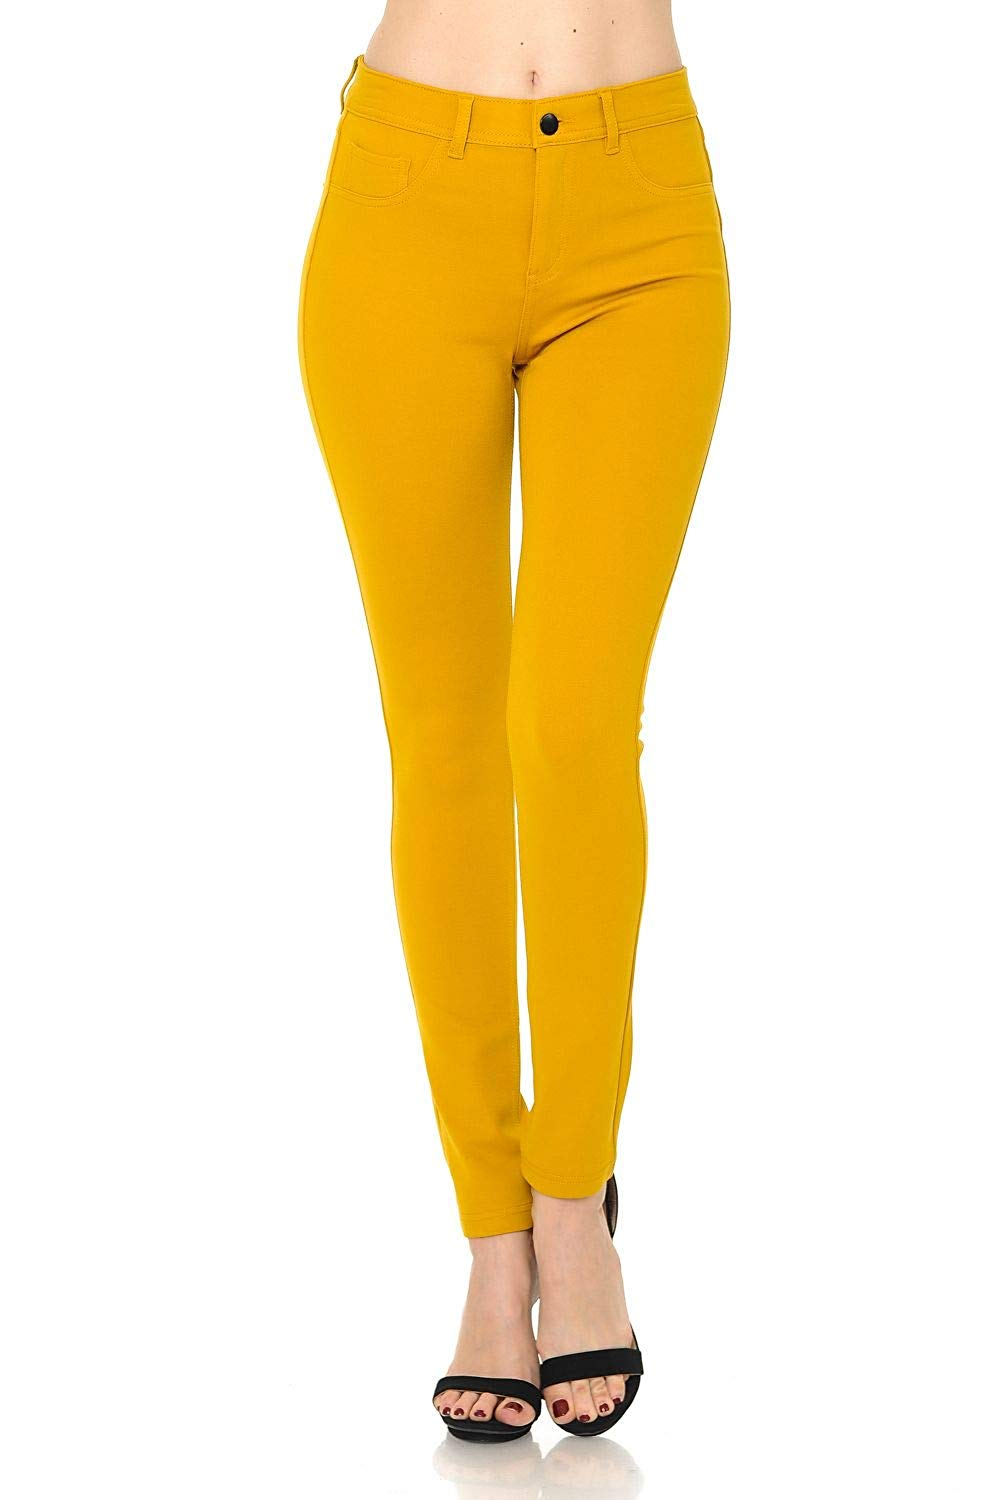 25 Pieces  Womens Solid Slim Fit Color Skinny Stretchy Ponte Pants Cargo Pants  Overalls  Straight